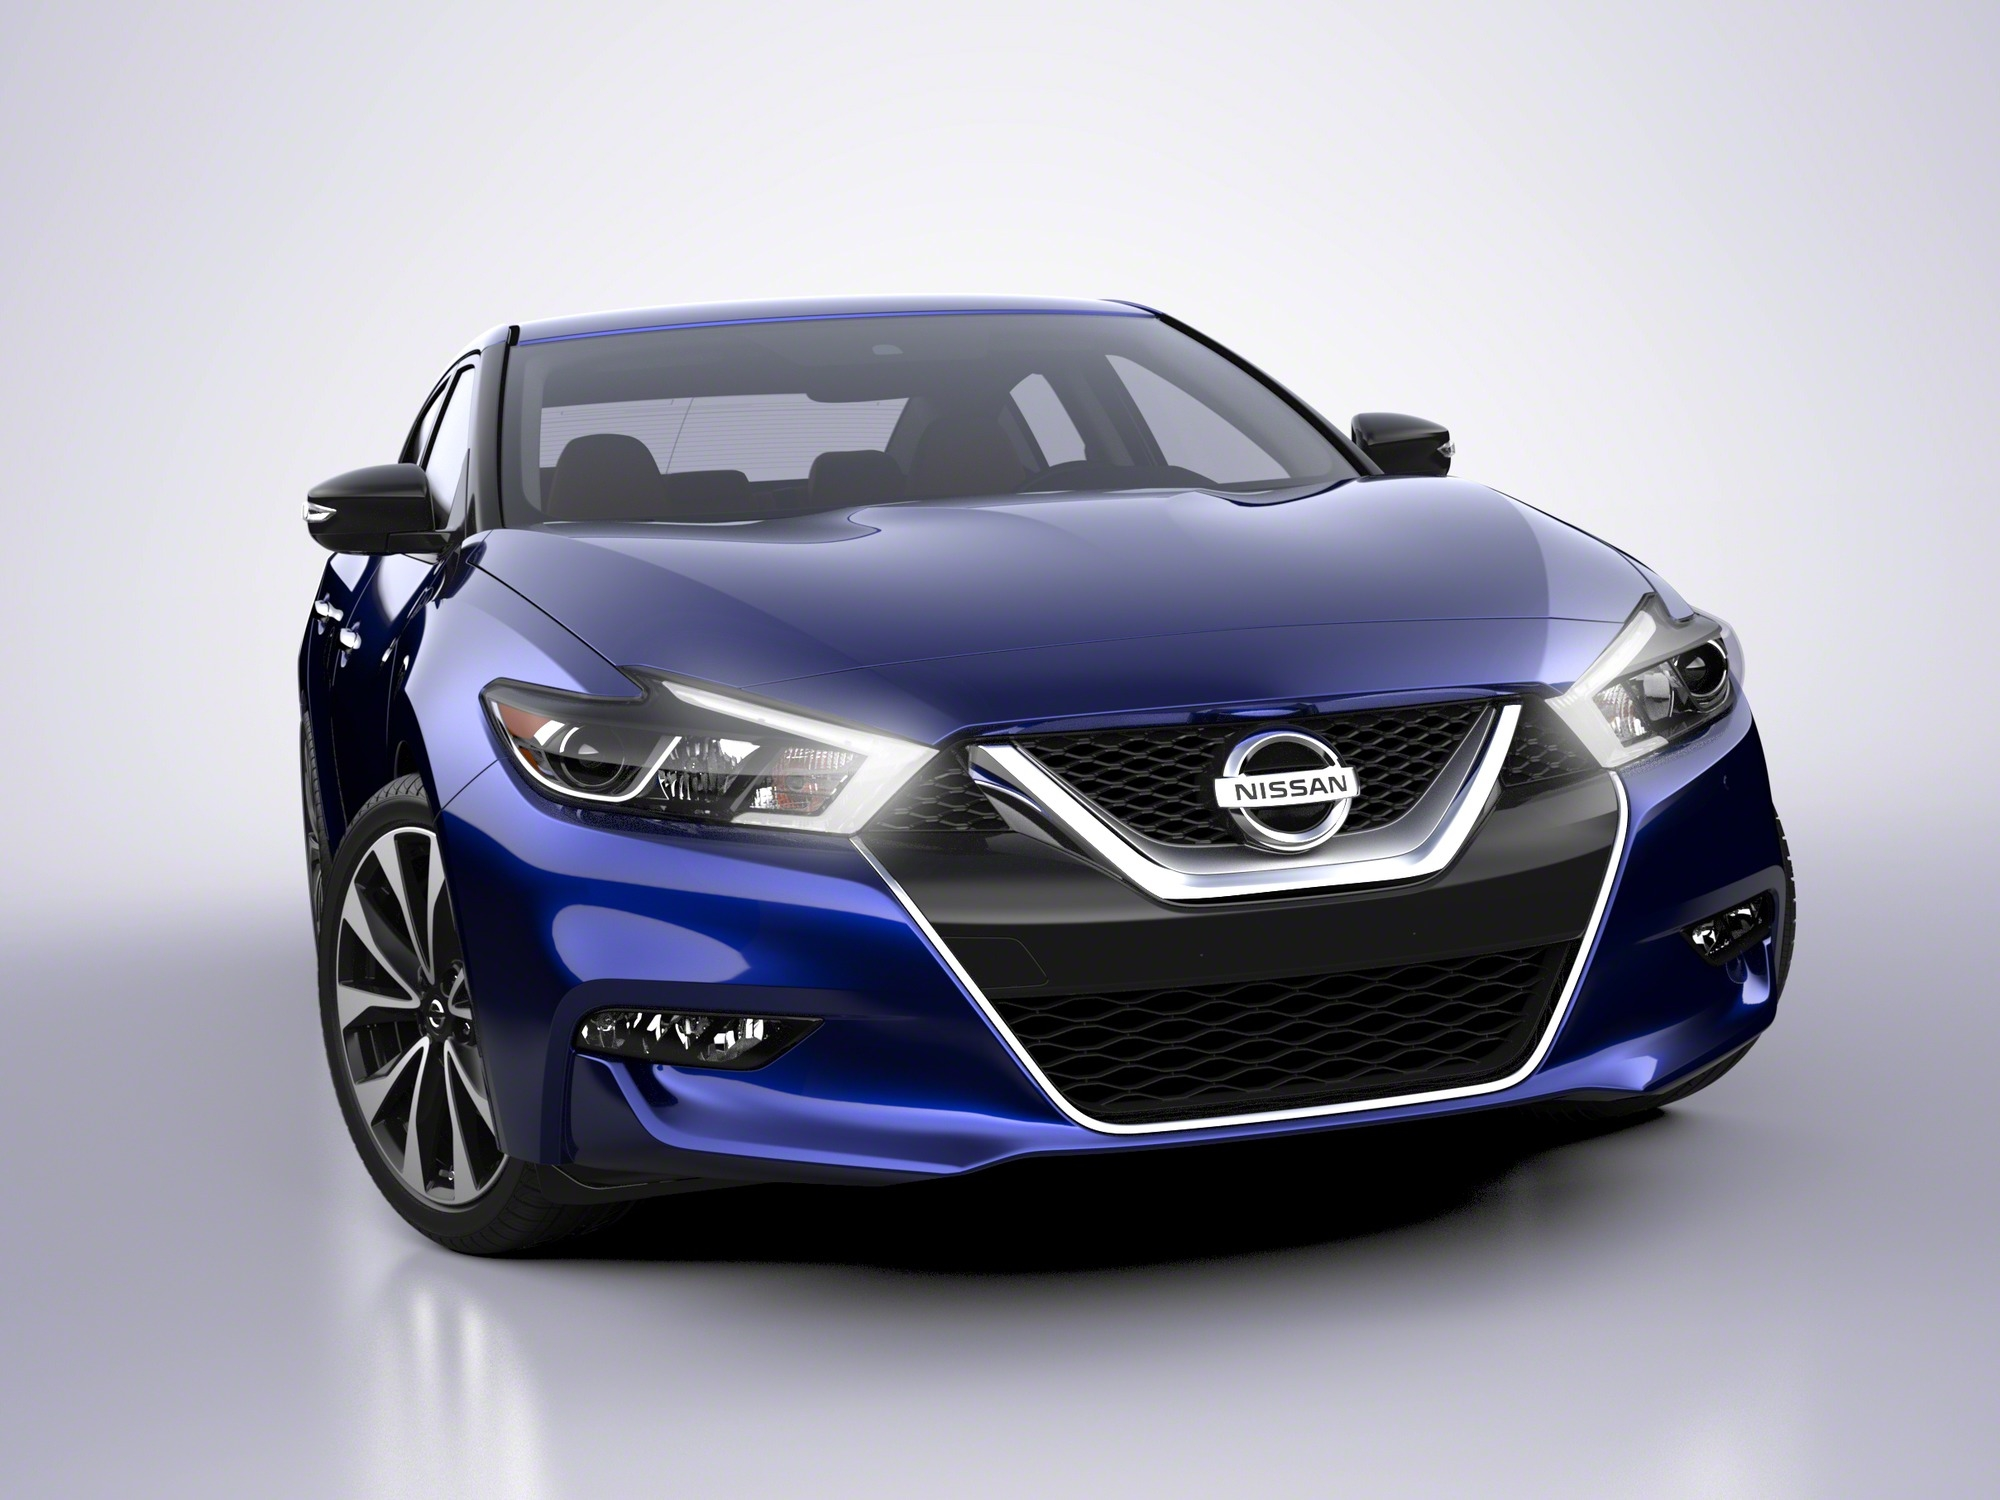 2016 2017 nissan maxima gallery 625140 top speed. Black Bedroom Furniture Sets. Home Design Ideas